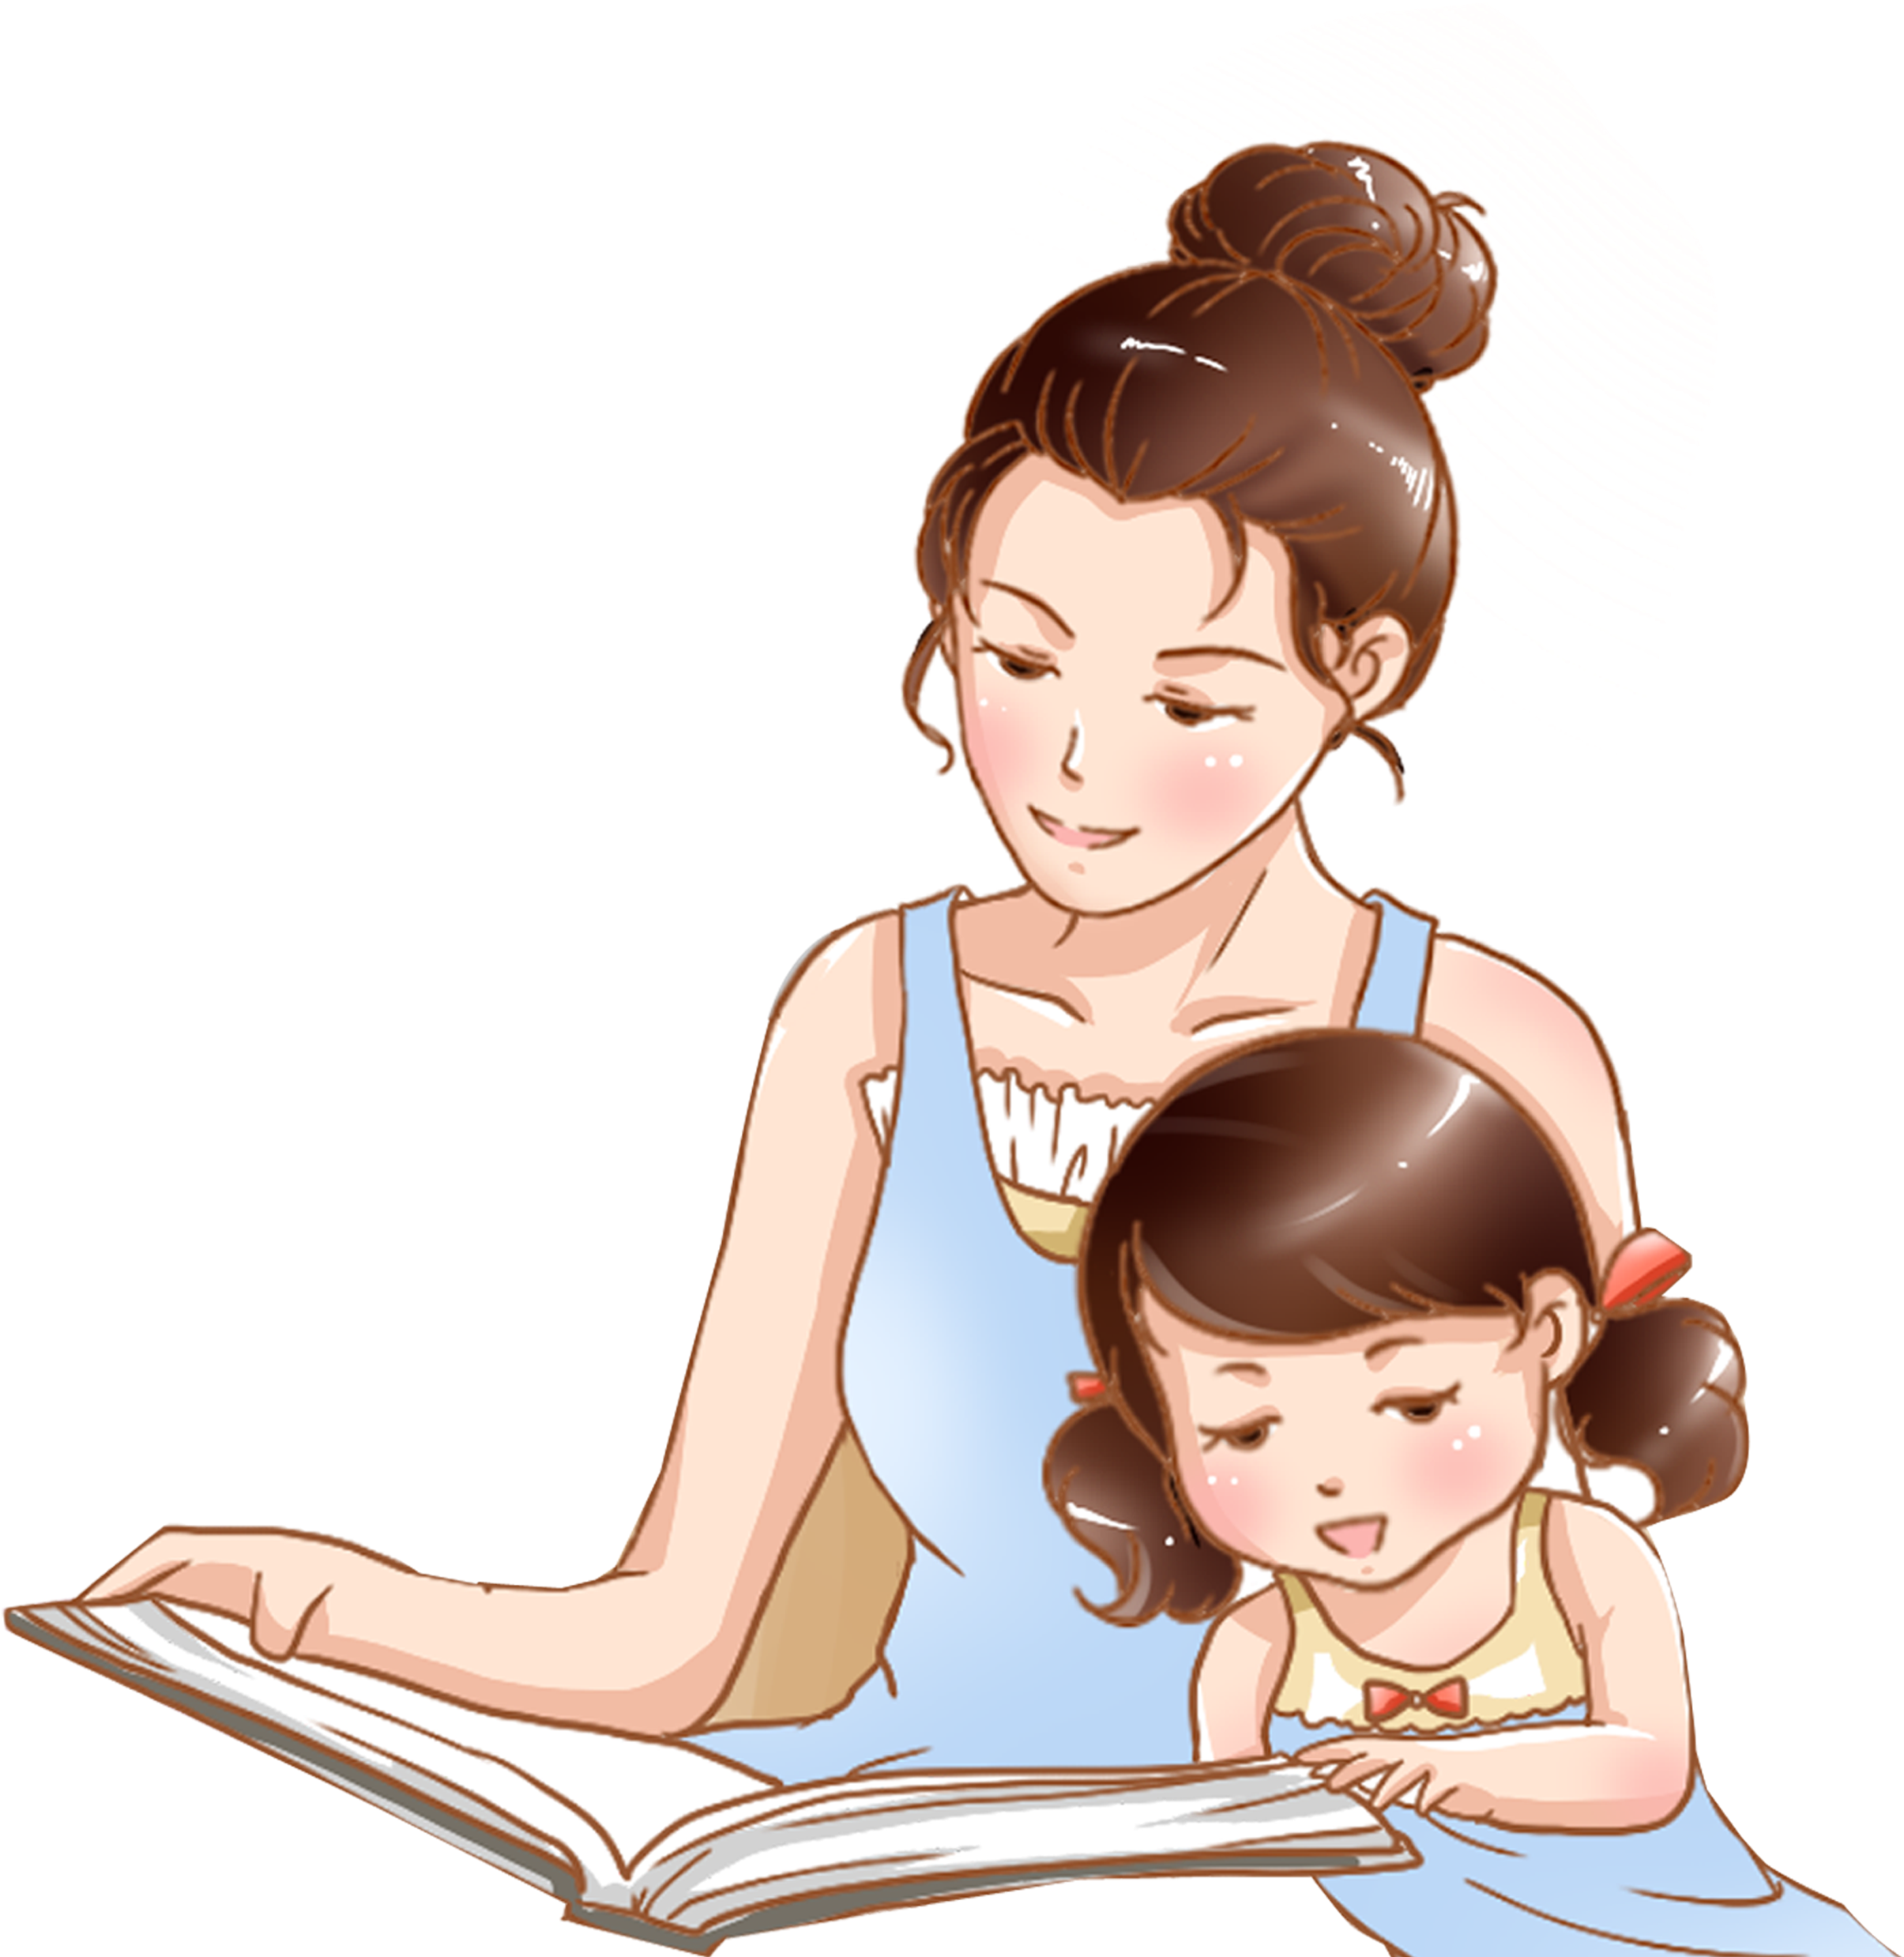 Download Hand Drawn Cartoon Mother Child Reading Decorative - การ์ตูน แม่  และ เด็ก PNG Image with No Background - PNGkey.com